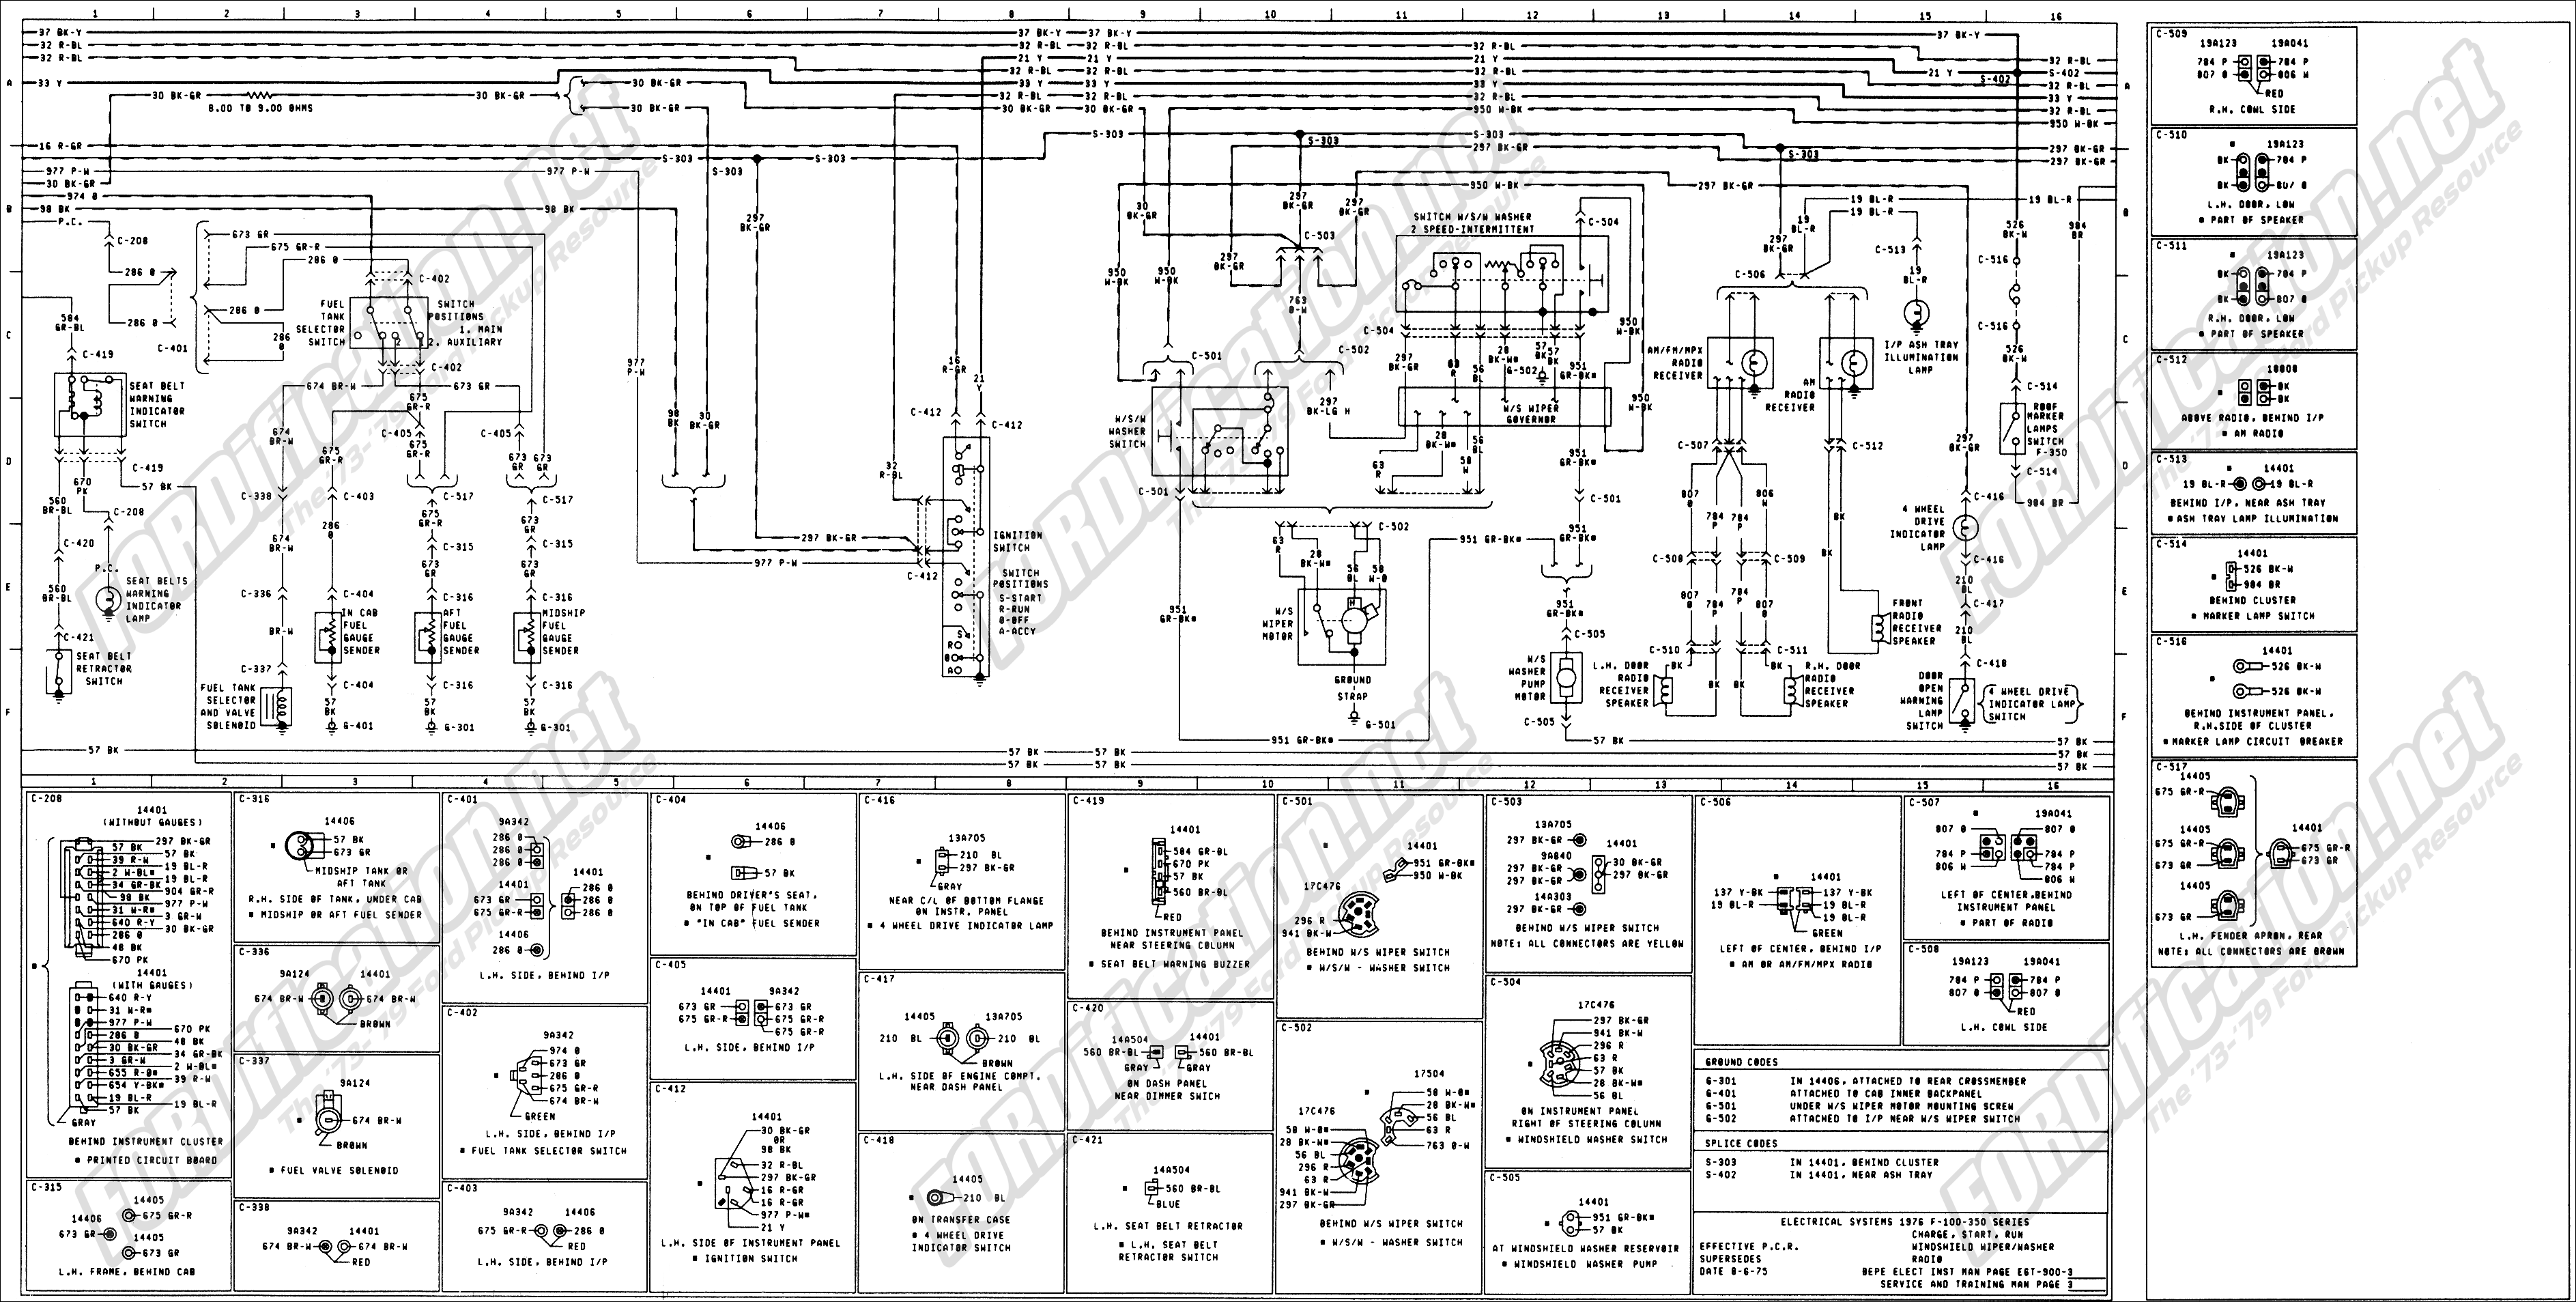 wiring_76master_3of9 1973 ford f250 wiring diagram ford f 150 starter wiring diagram ford f250 wiring diagram online at bayanpartner.co